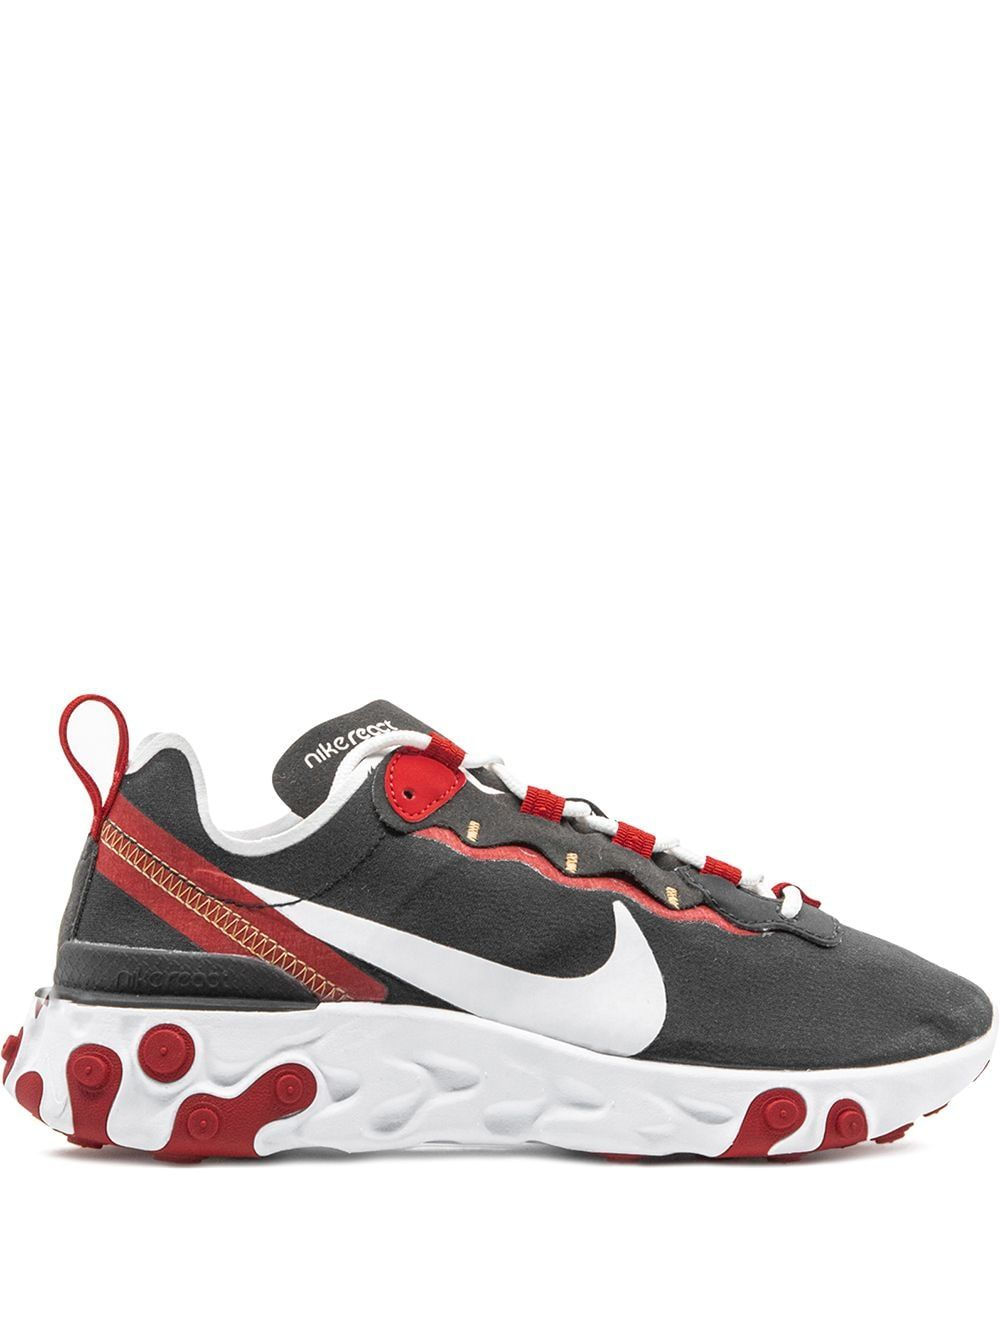 Nike React Element 55 Sneakers in 2020 | Nike, Sneakers